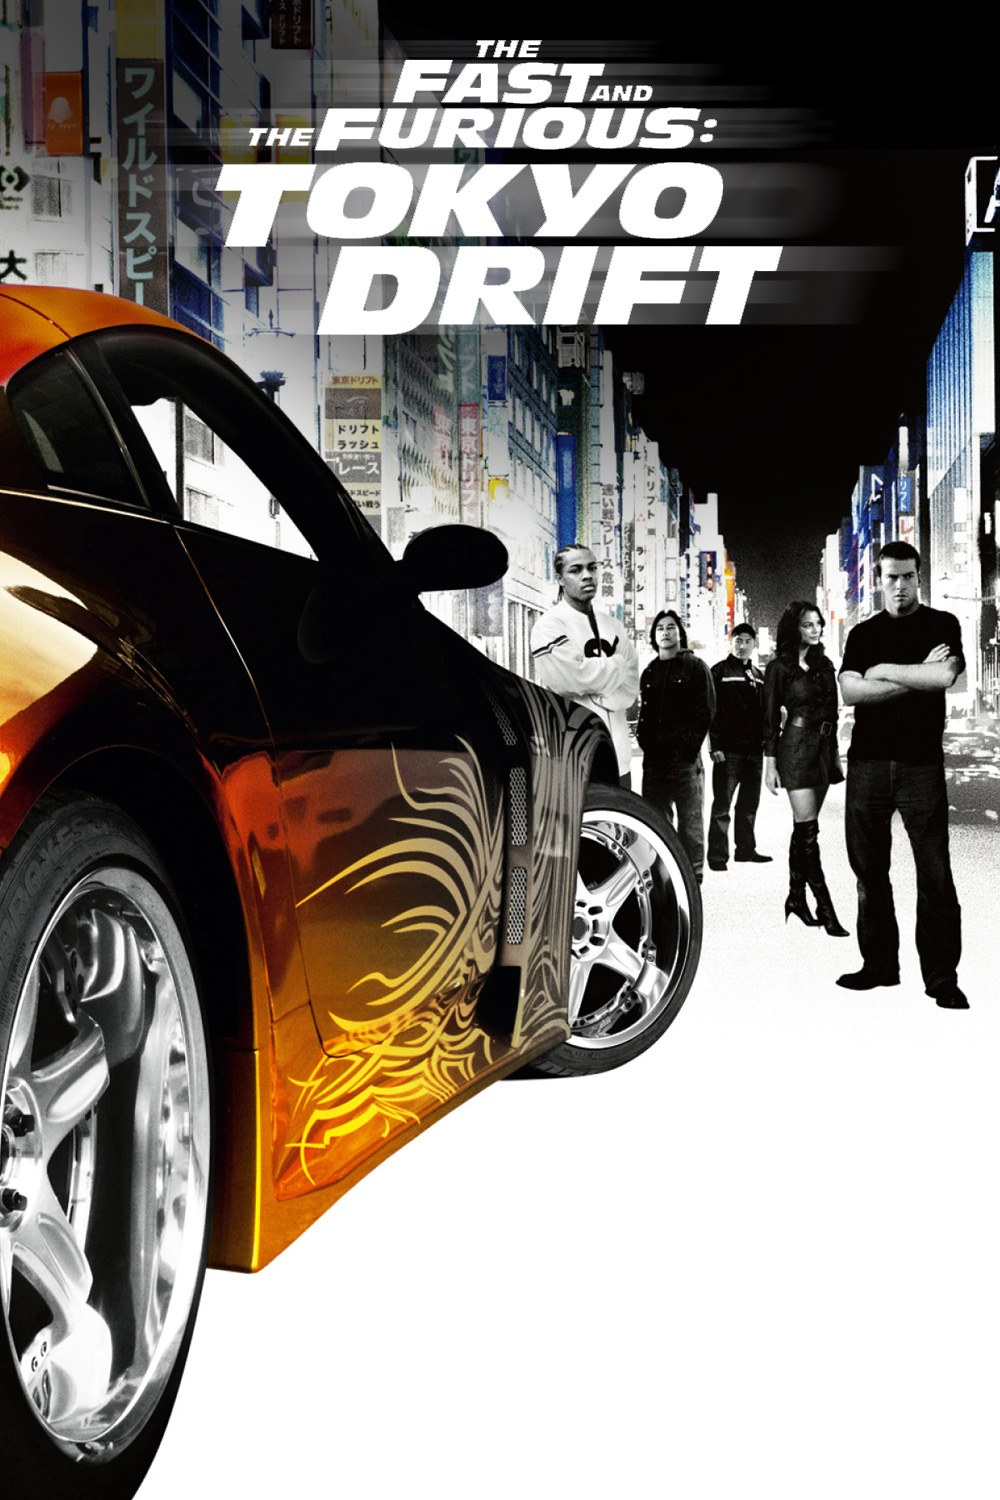 The Fast and the Furious: Tokyo Drift - Wikipedia